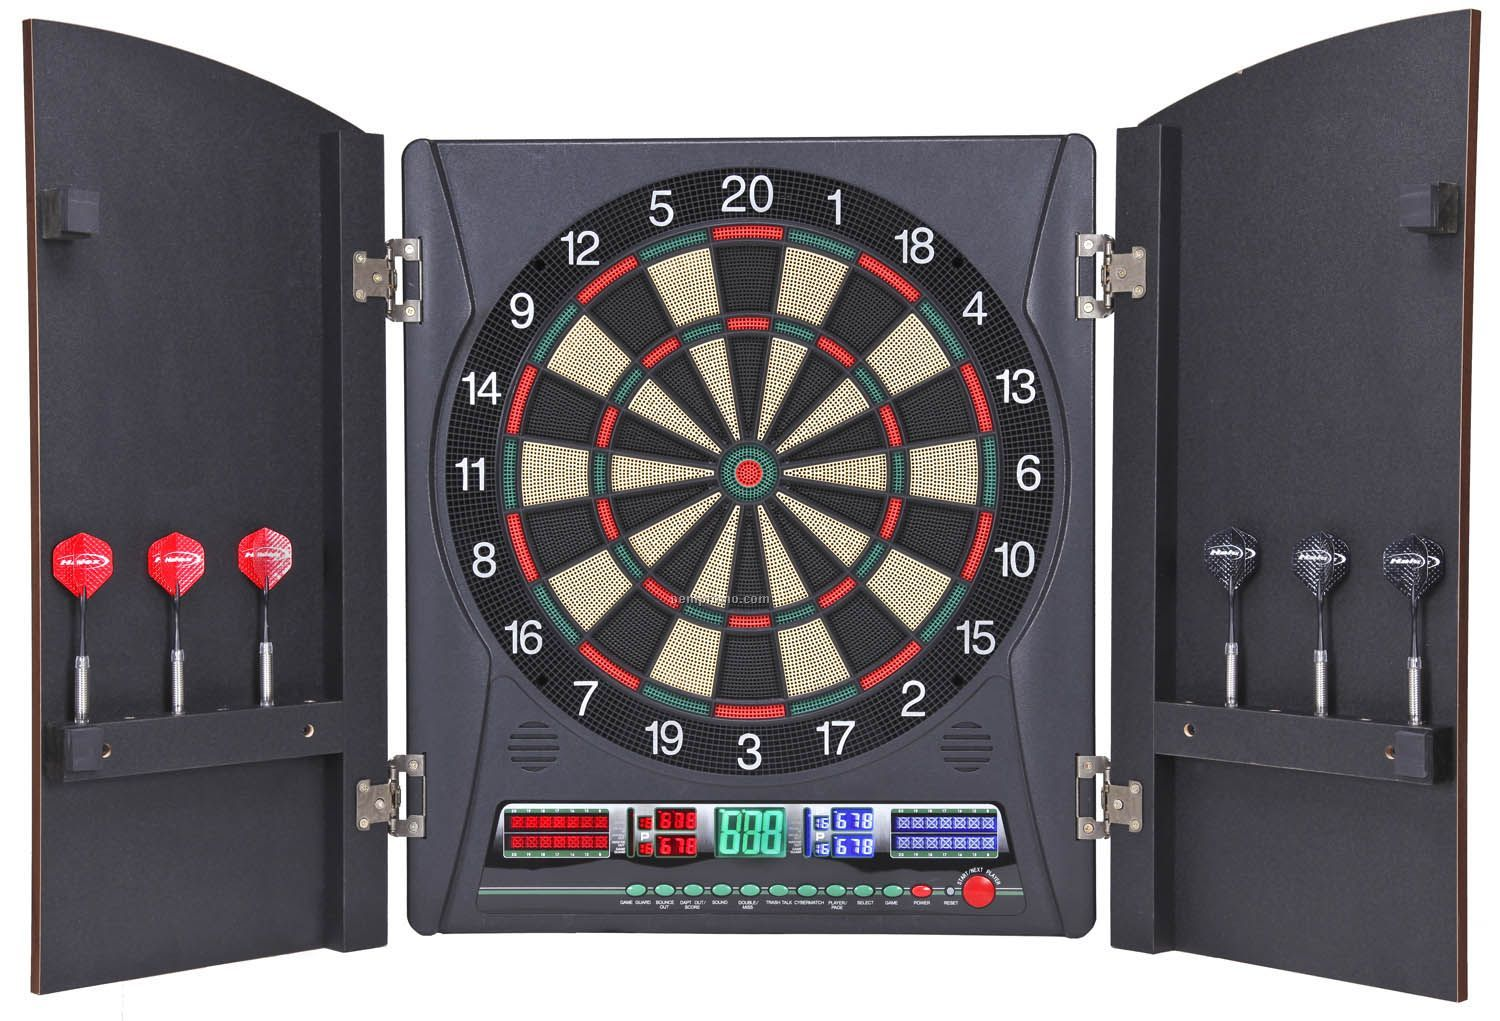 Electronic Dart Boards With Cabinet Dart Board w/ Cabinet